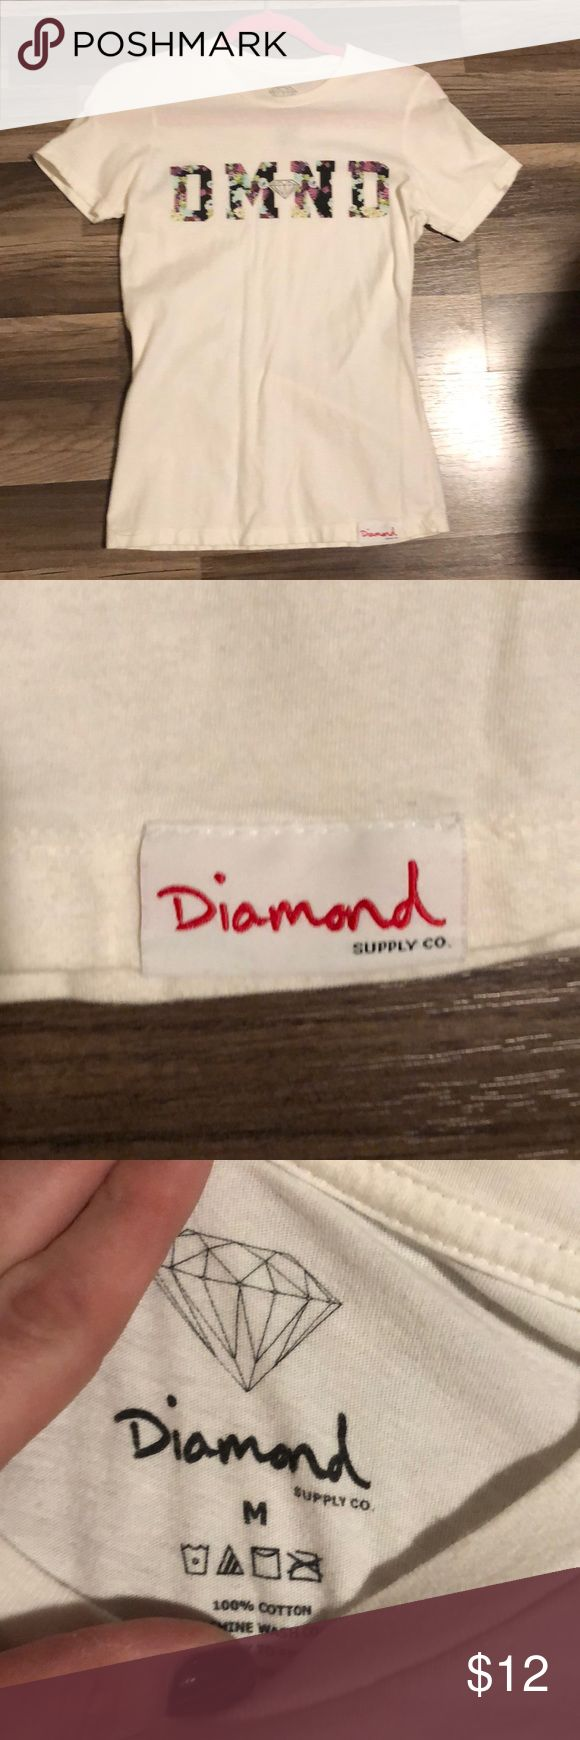 DIAMOND SUPPLY COMPANY WOMENS T SHIRT M Like new, only worn a few times. No stains or rips. Diamond Supply Co. Tops Tees - Short Sleeve